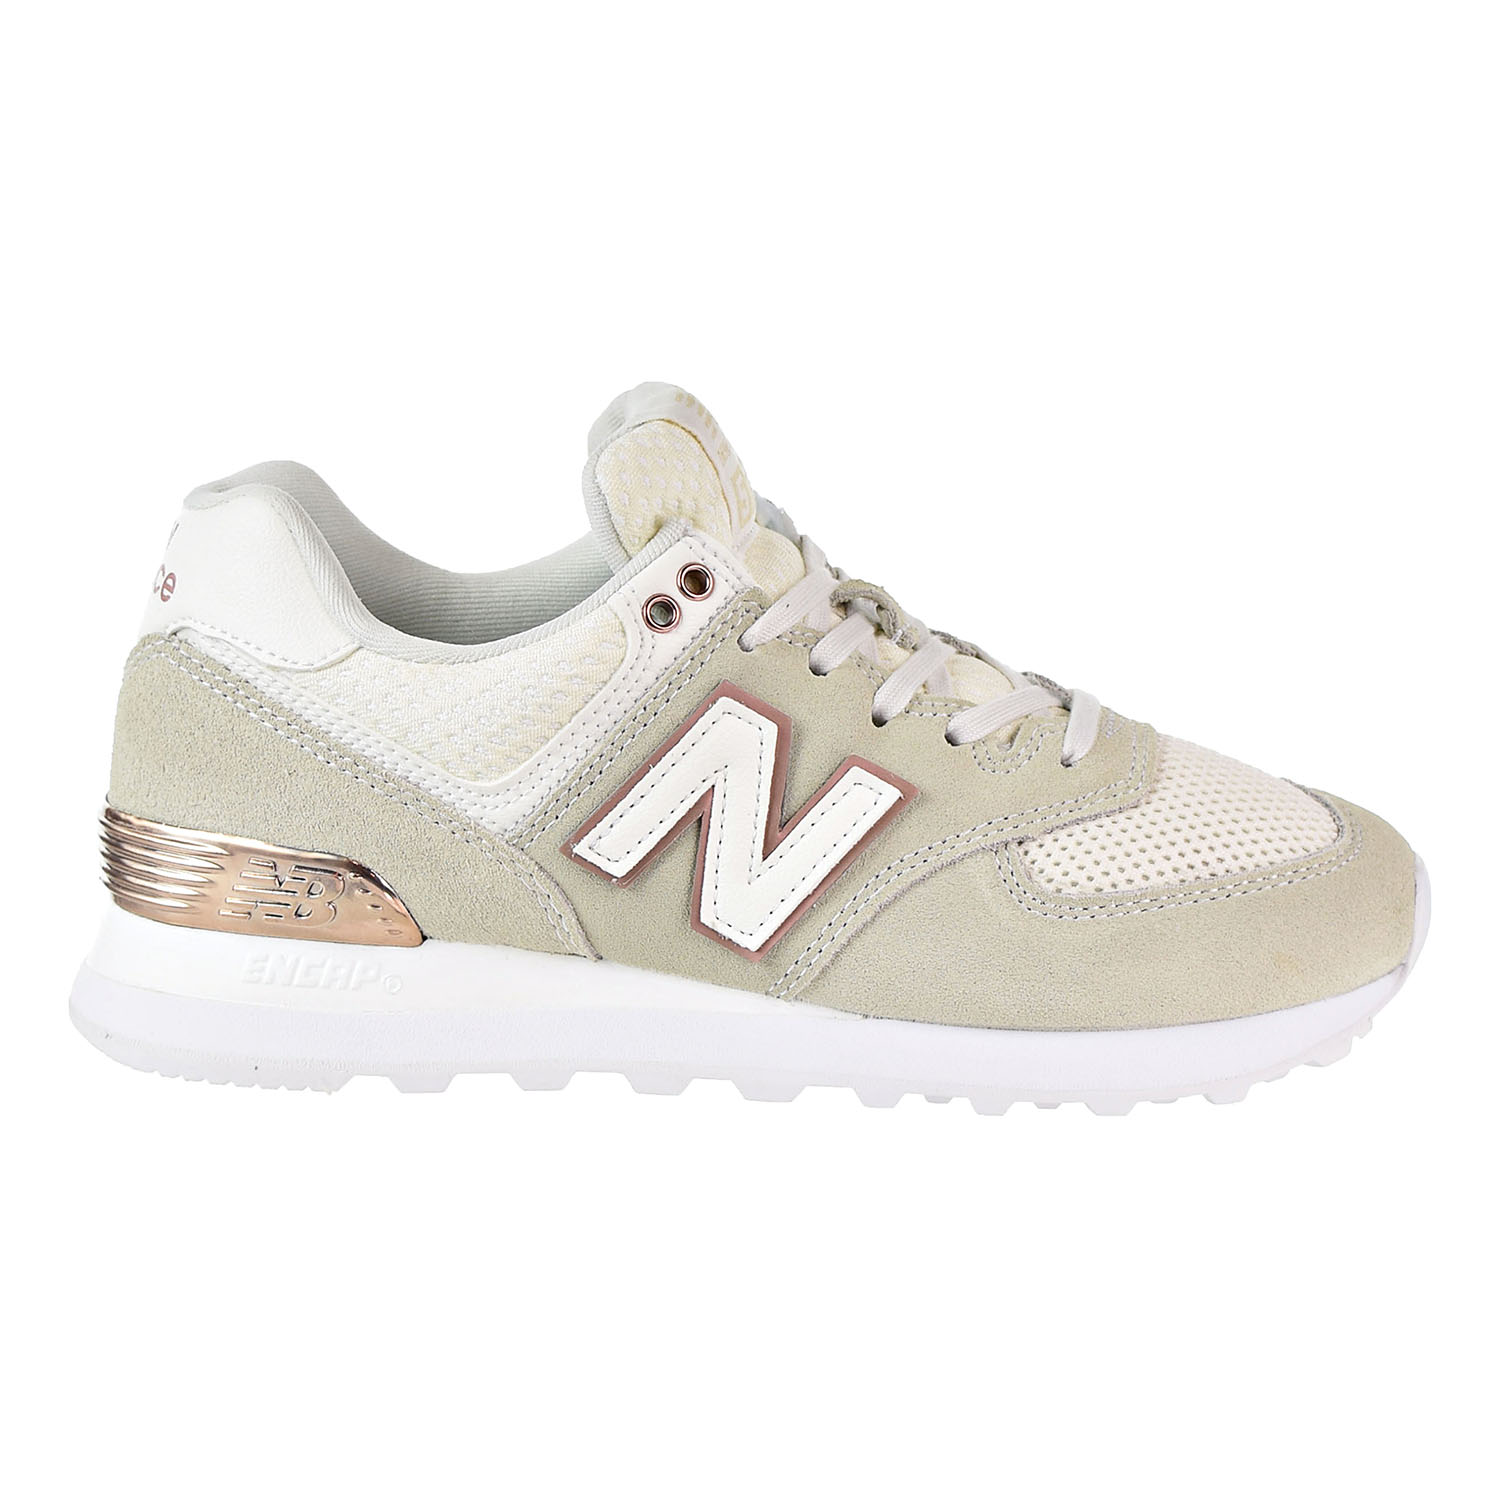 finest selection fb3cc 23b45 New Balance 574 All Day Rose Womens's Shoes Sea Salt ...